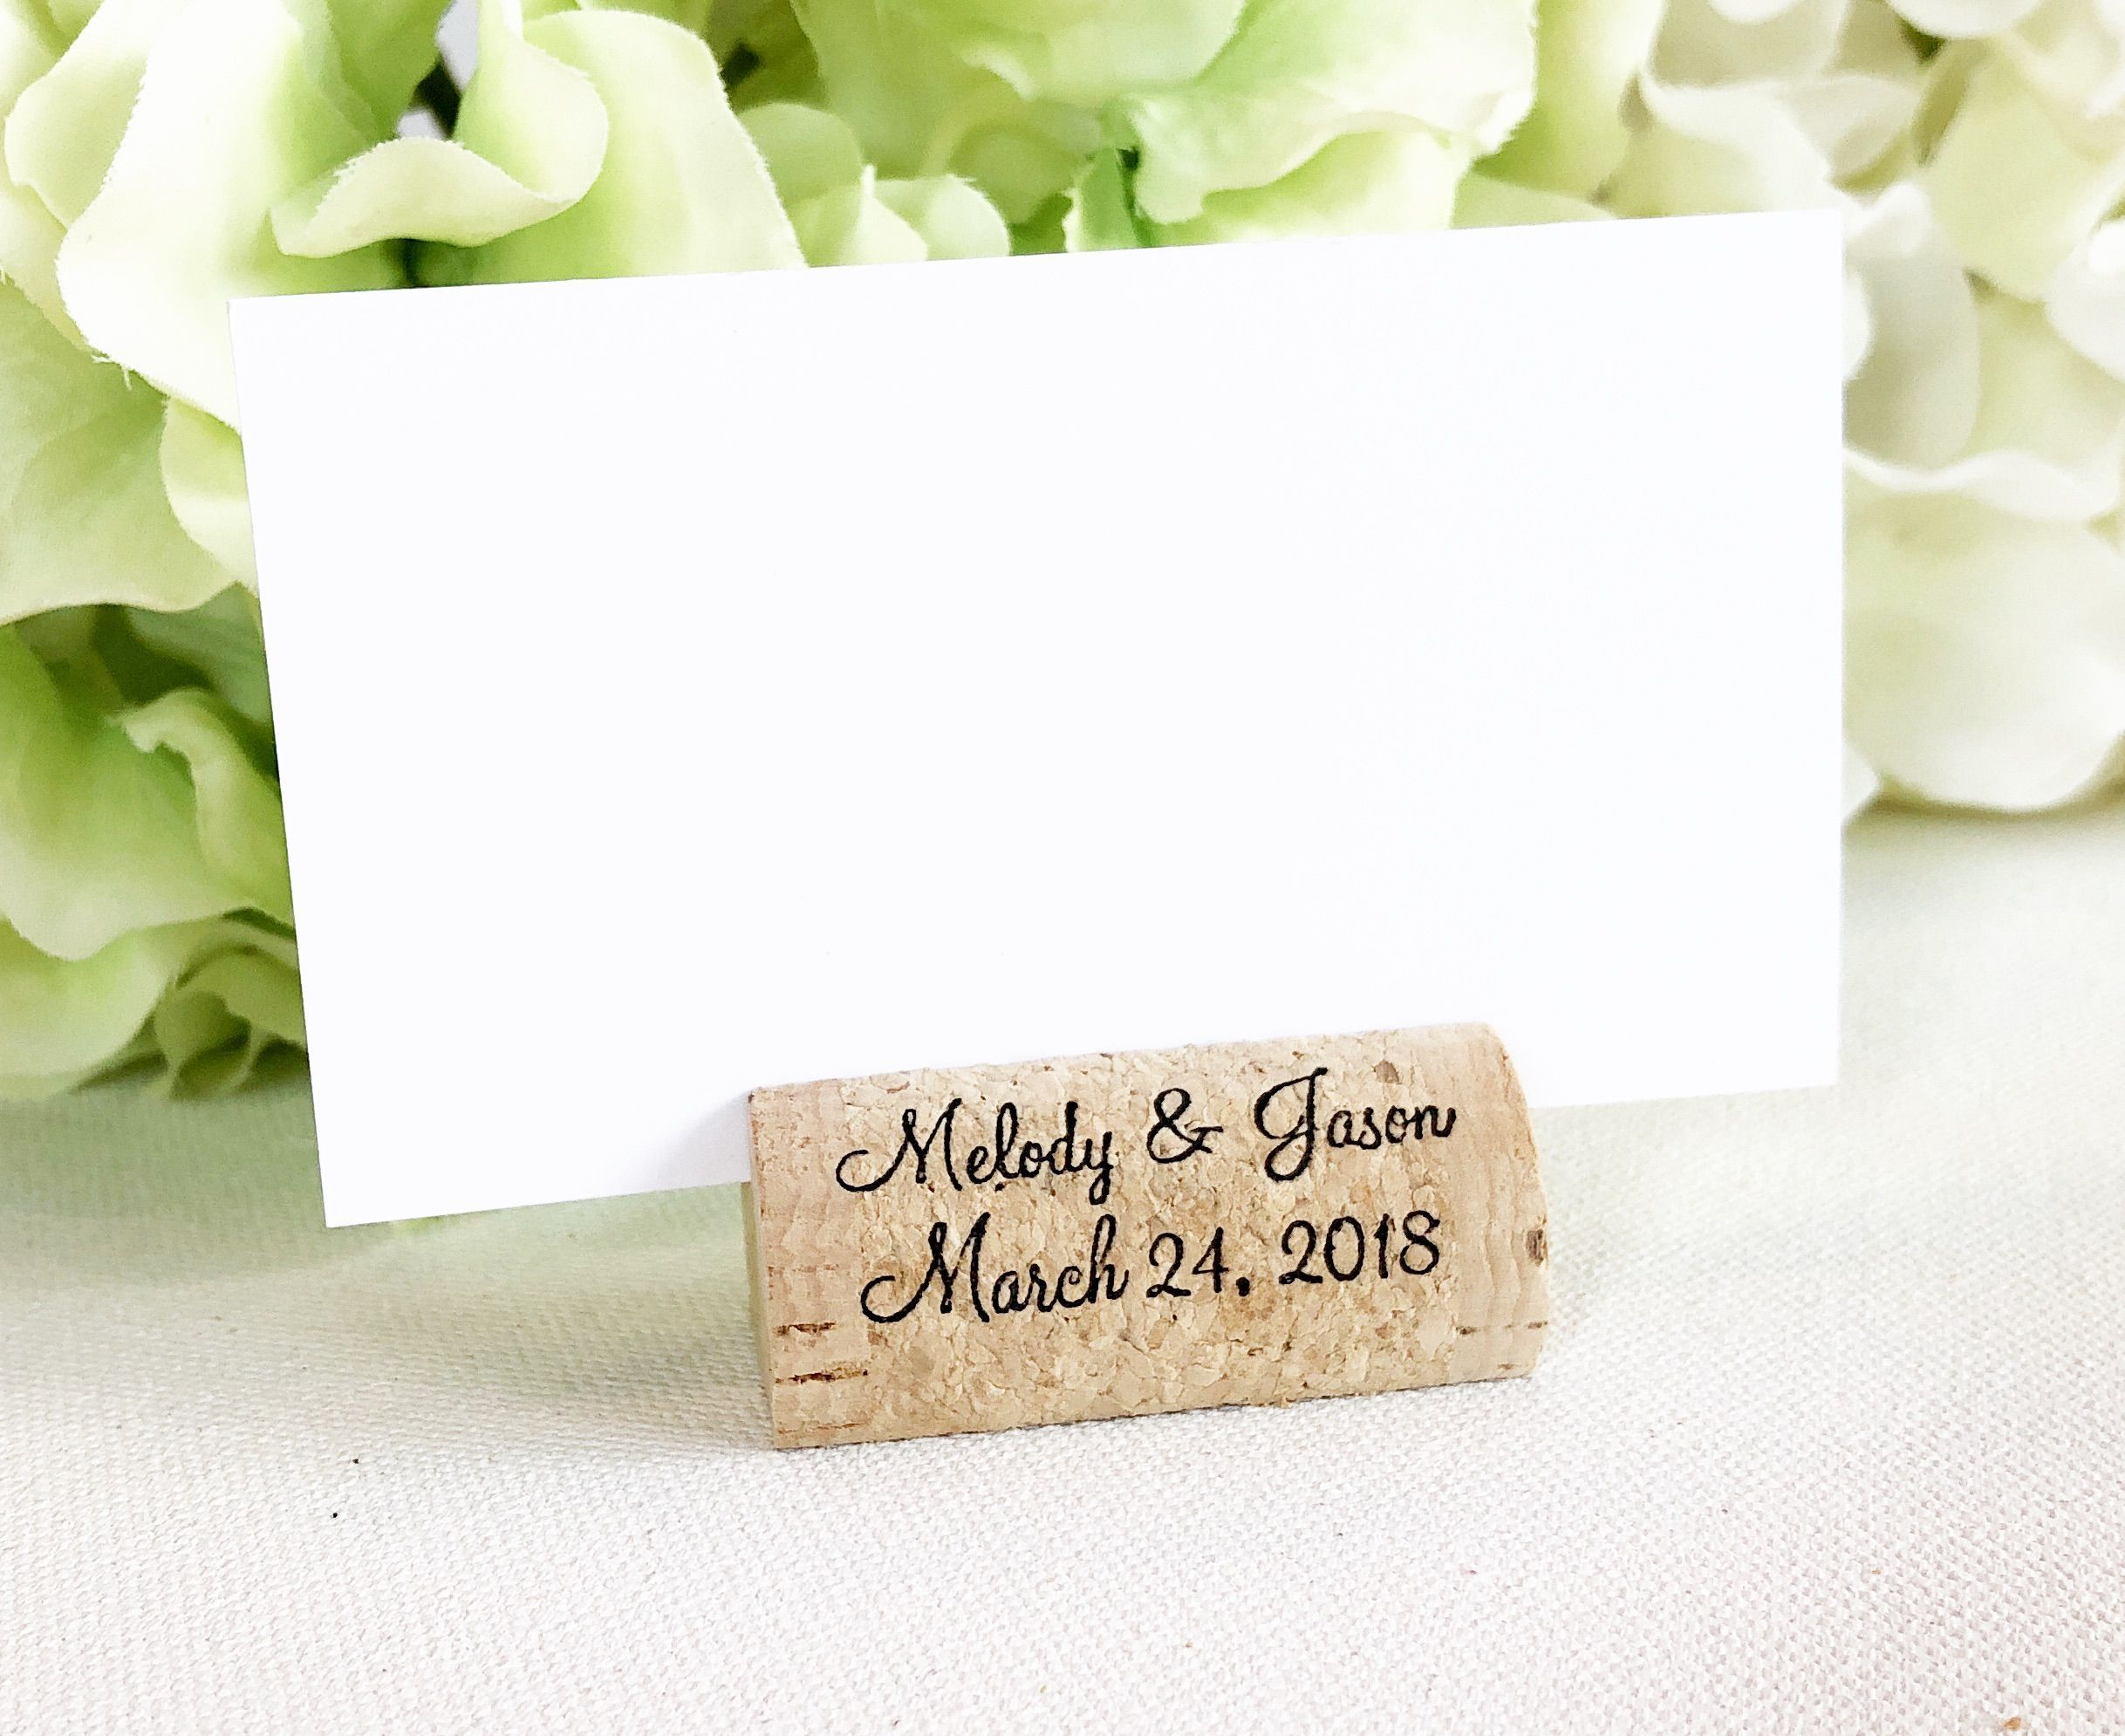 Wine Cork Place Card Holder Build Your Own 2018 Wedding Trends